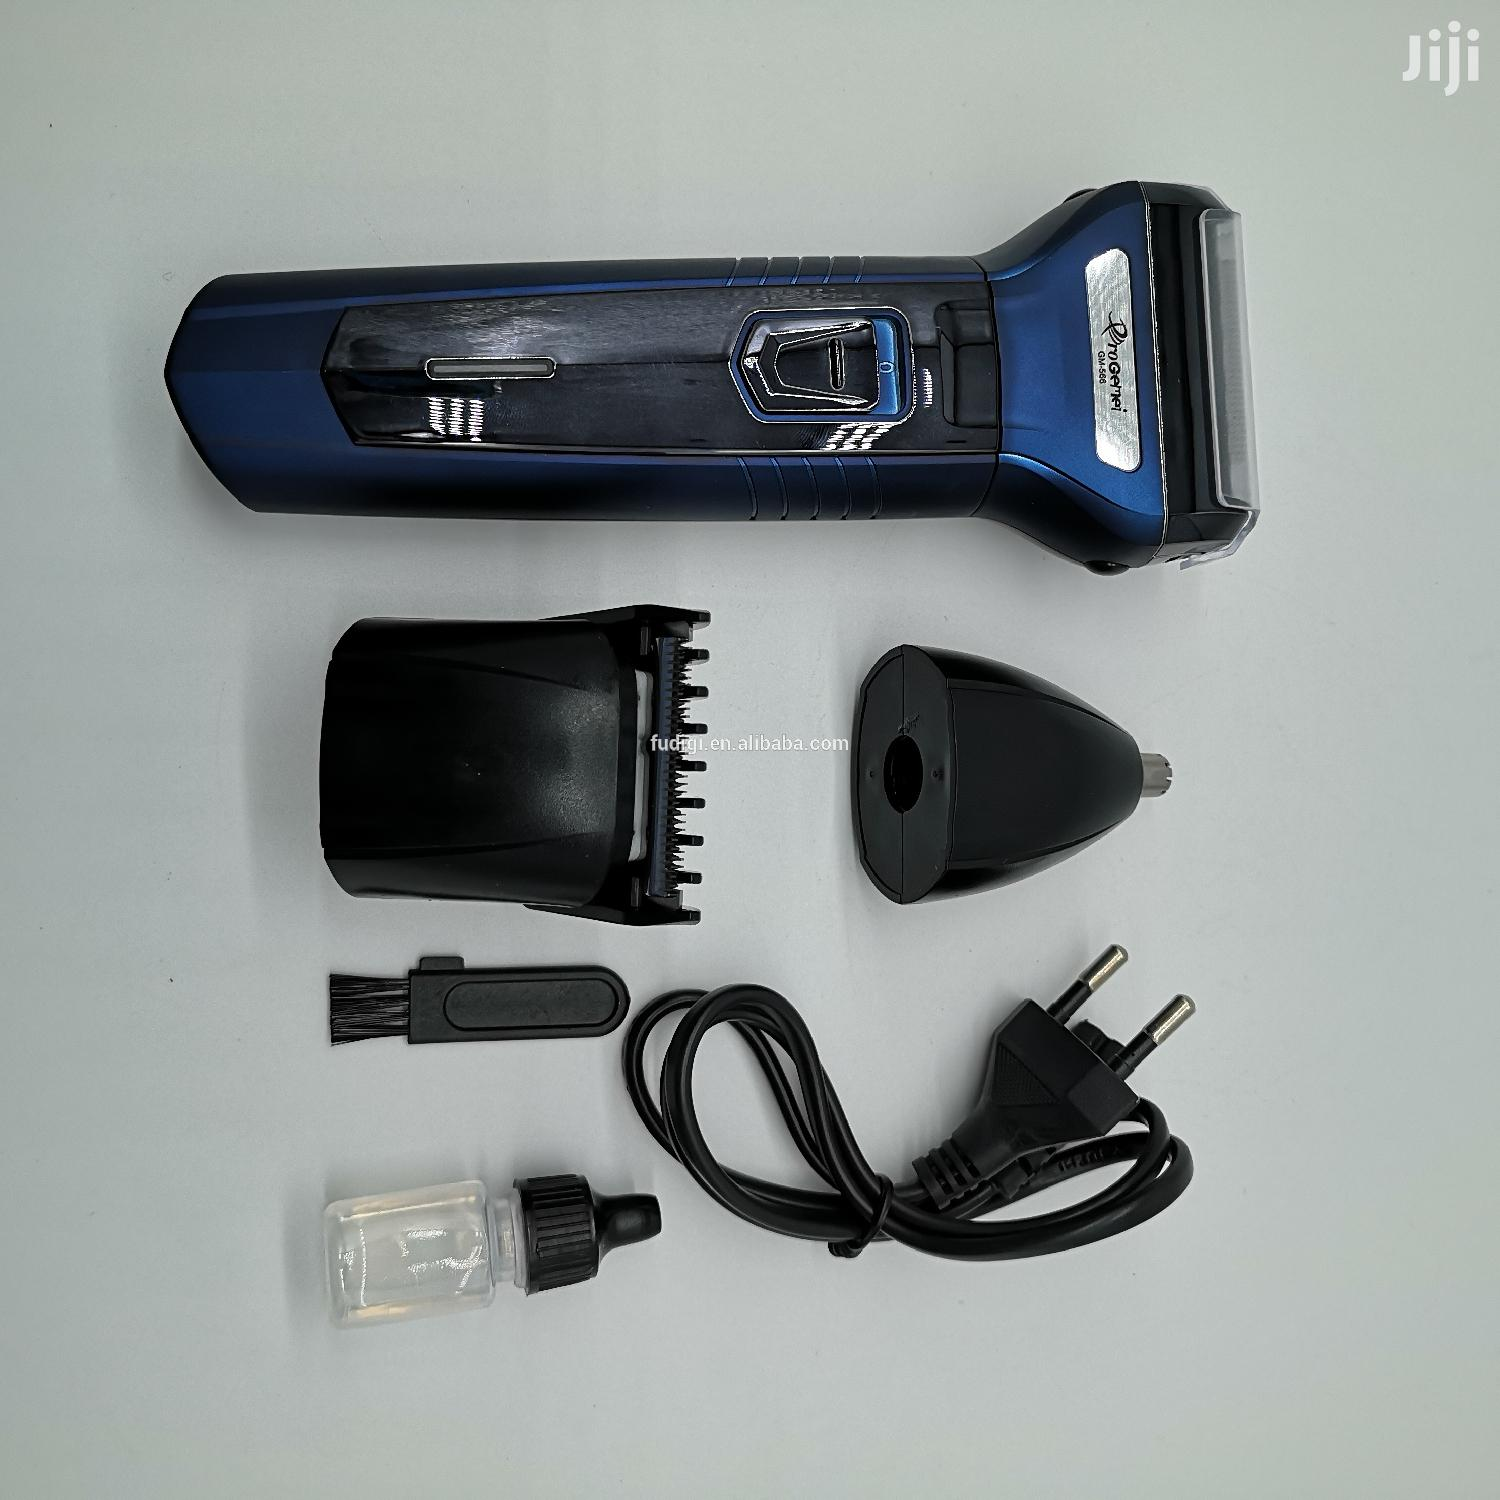 3in1 Hair Clipper   Tools & Accessories for sale in Kampala, Central Region, Uganda